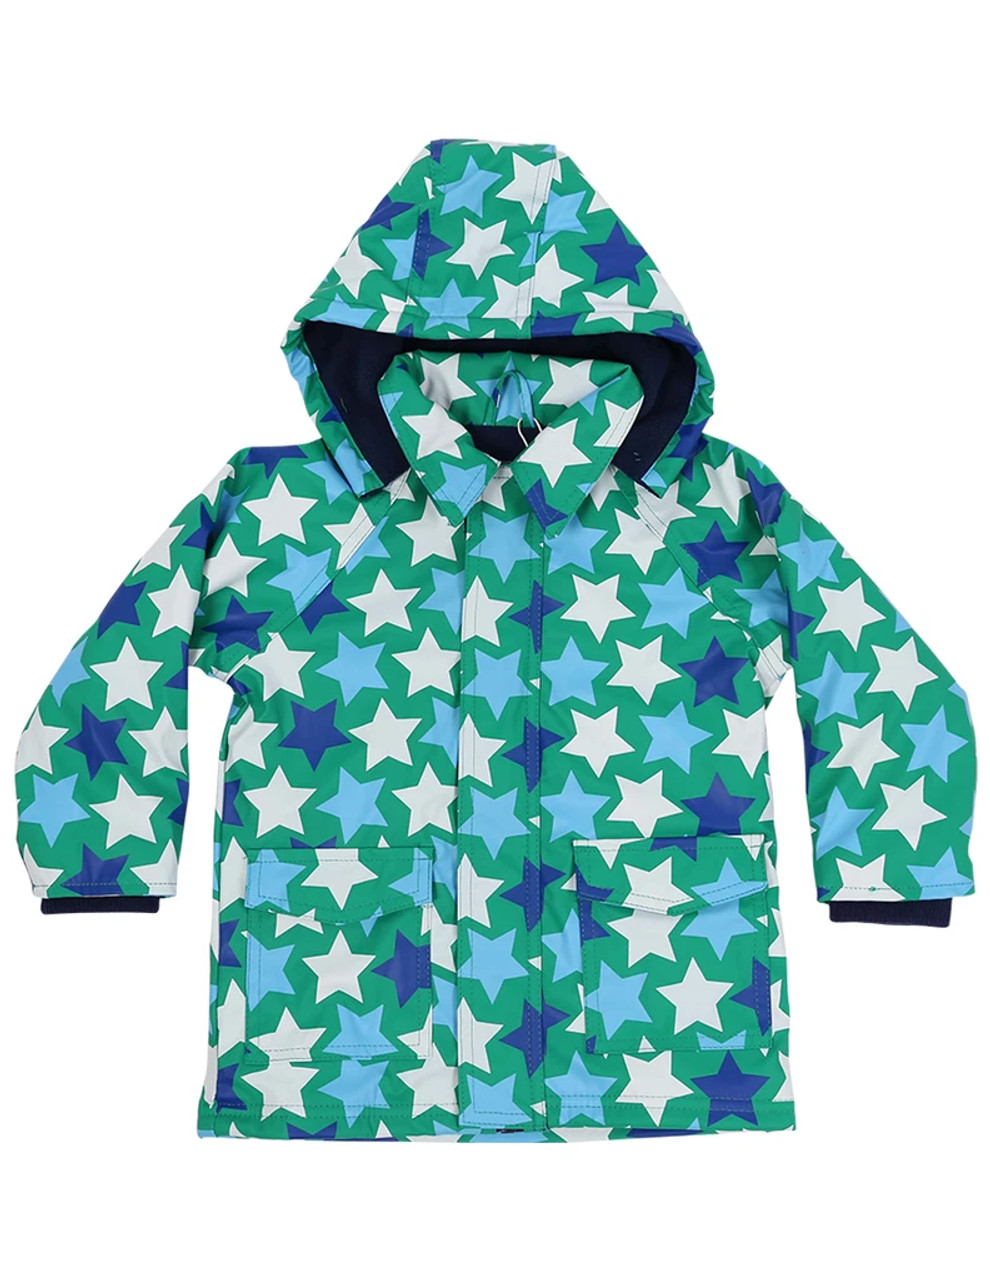 Korango Raincoat 5 Years at Baby Barn Discounts Beautifully designed, bright & fun raincoat from Korango. Perfect for rainy cold days. Waterproof on the outside with soft fleece lining for comfort.